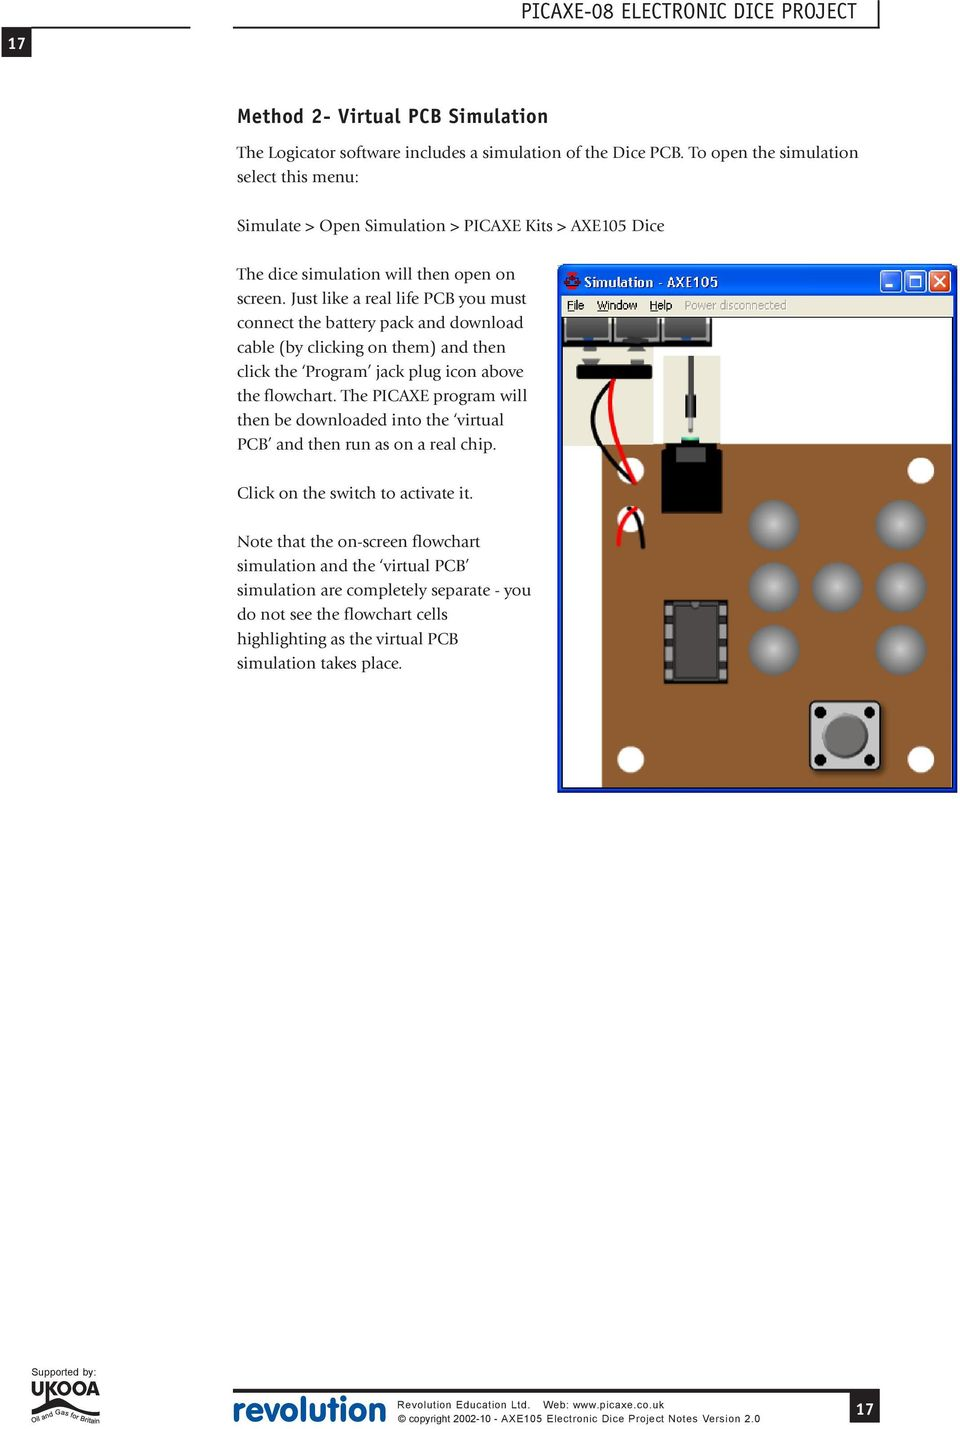 Example Use Of A Microcontroller Revolution Education Ltd Web Pdf 115 Projects Diy Circuit Board Falsh Toy Integrated Electronic Just Like Real Life Pcb You Must Connect The Battery Pack And Download Cable